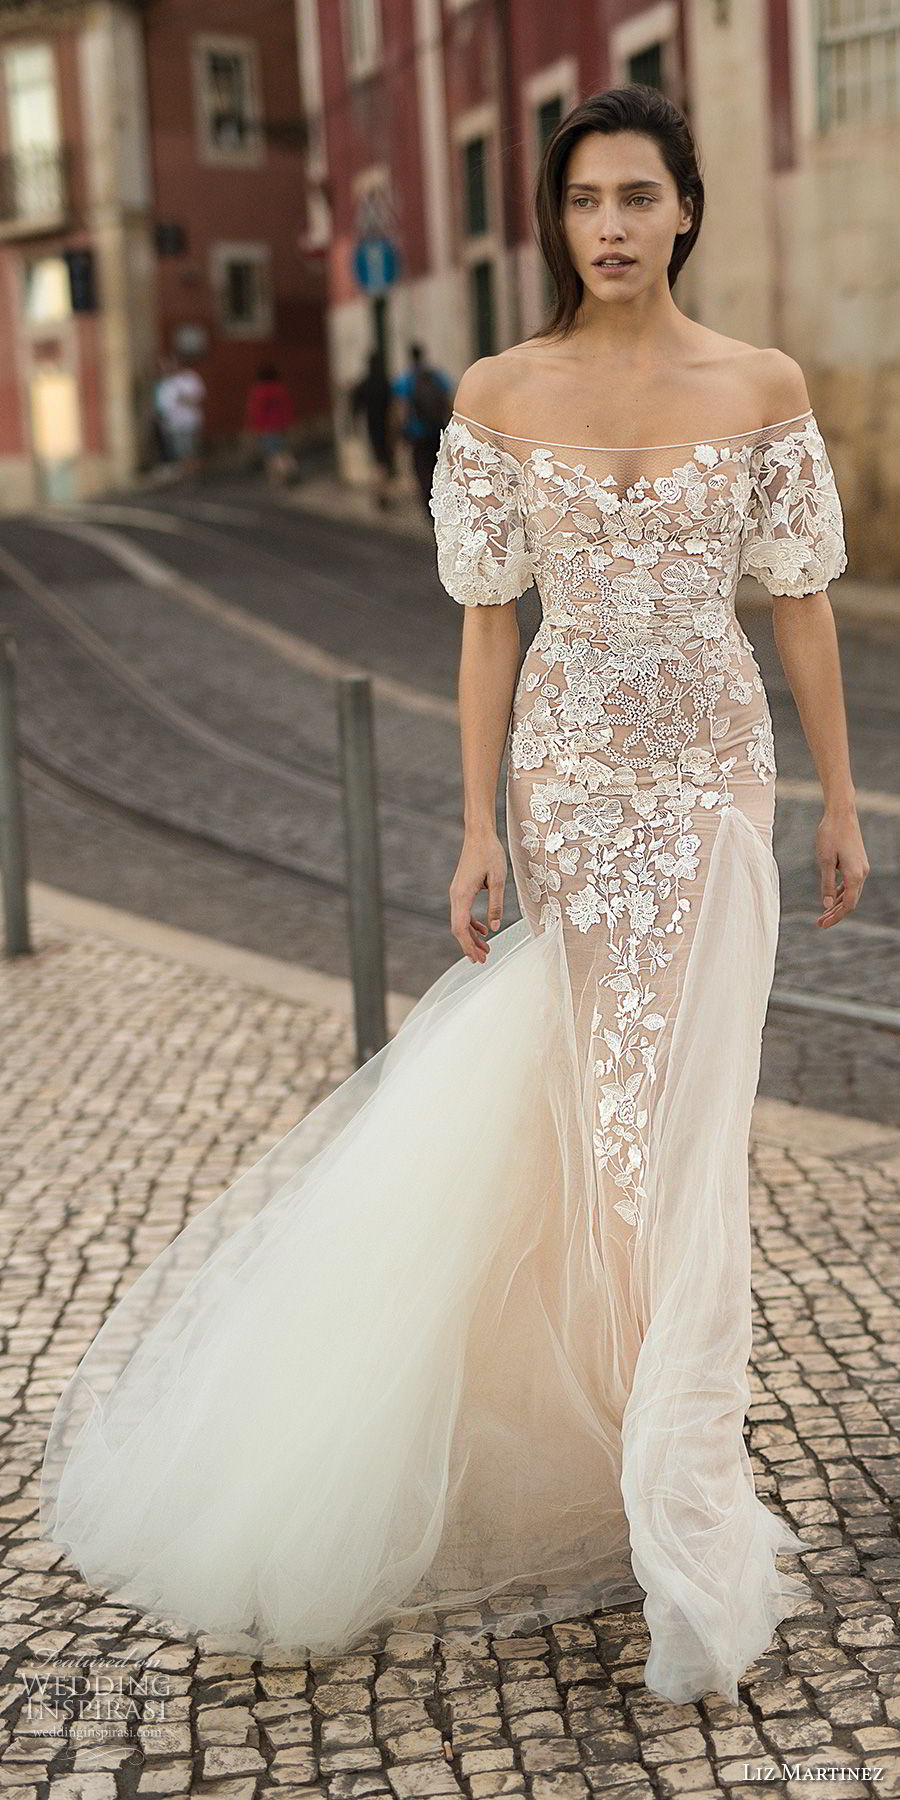 liz martinez 2018 lisbon off the shoulder sweetheart neckline full embellishment elegant romantic sheath fit and flare wedding dress (11) mv